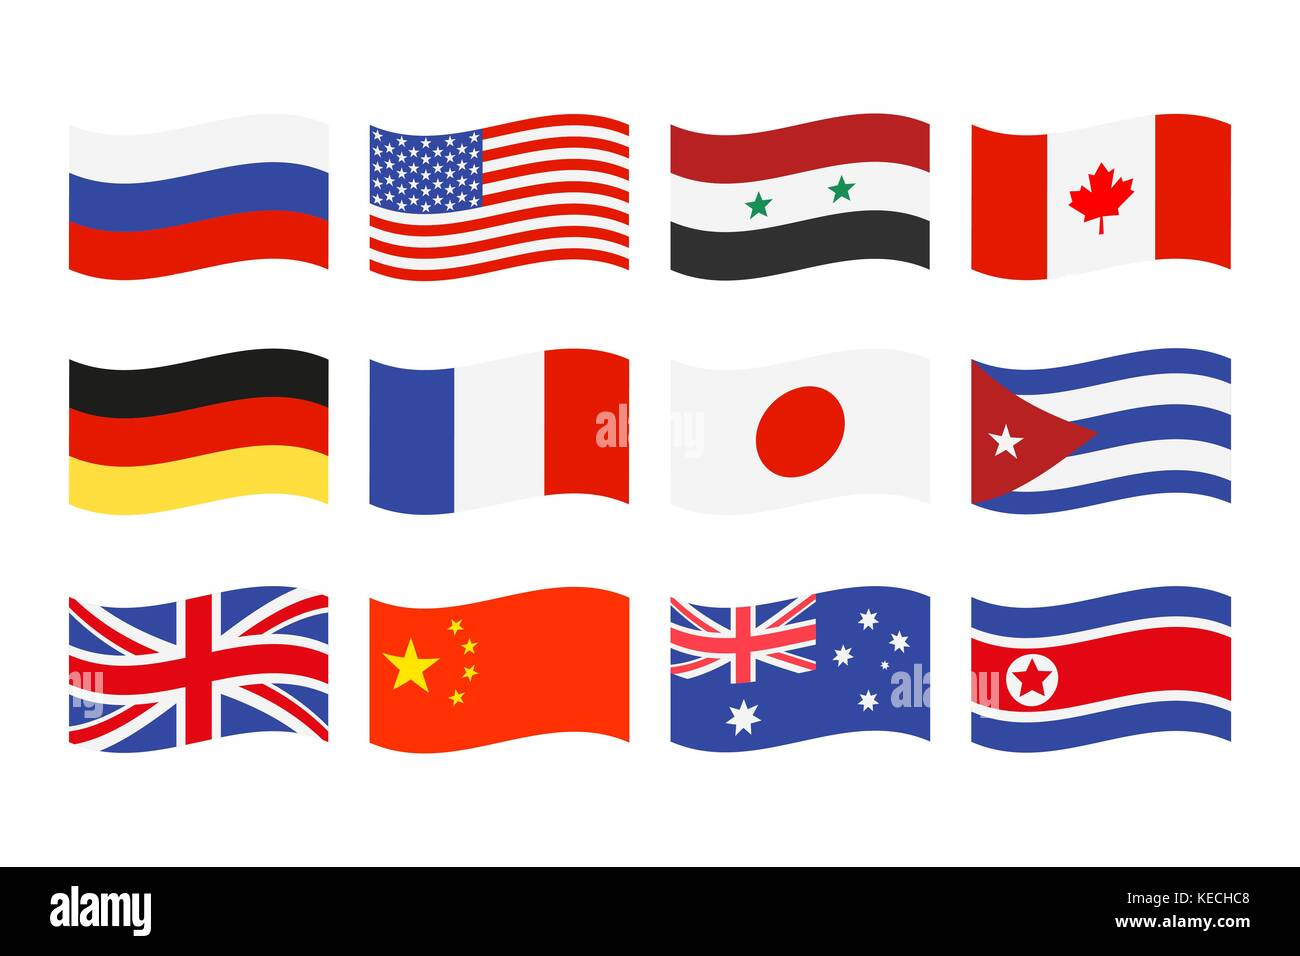 japan an independent dependant nation View notes - newly independant nation from ls 9007 at harvard ss period 4 2 24-oct-96 a newly independent nation is seeking advice from other nations as it establishes its domestic policies on a.